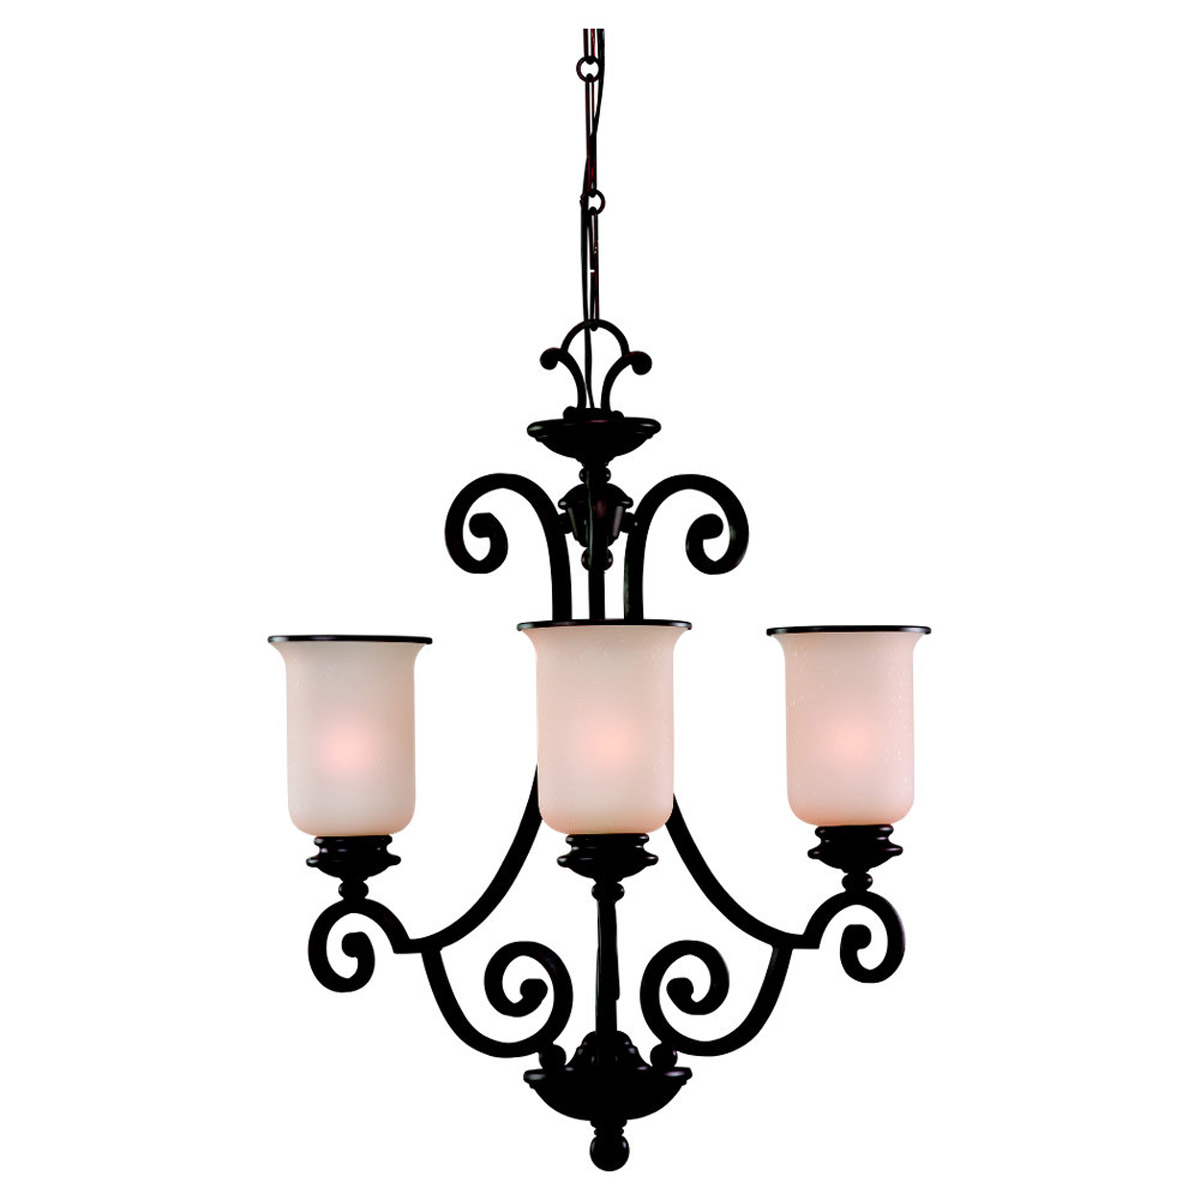 Sea Gull Lighting Acadia 3 Light Chandelier in Misted Bronze 31145-814 photo